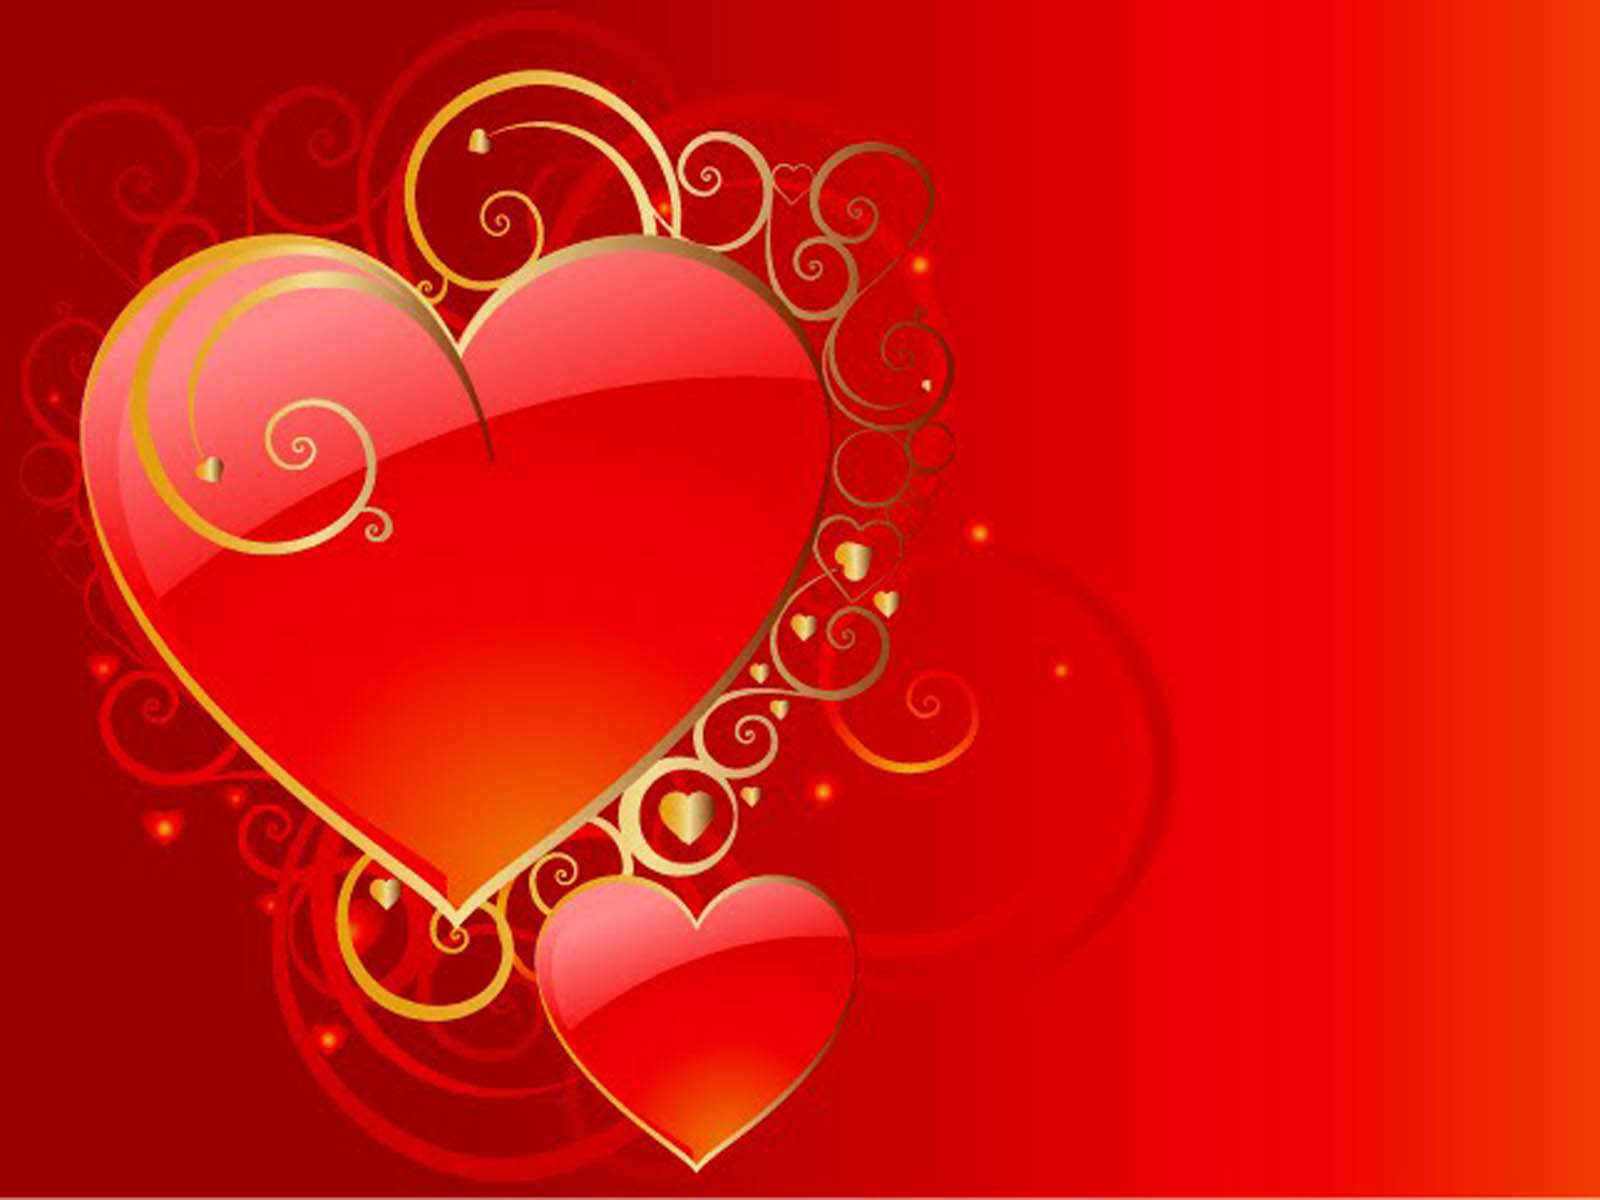 Wallpaper: Love Heart Wallpapers